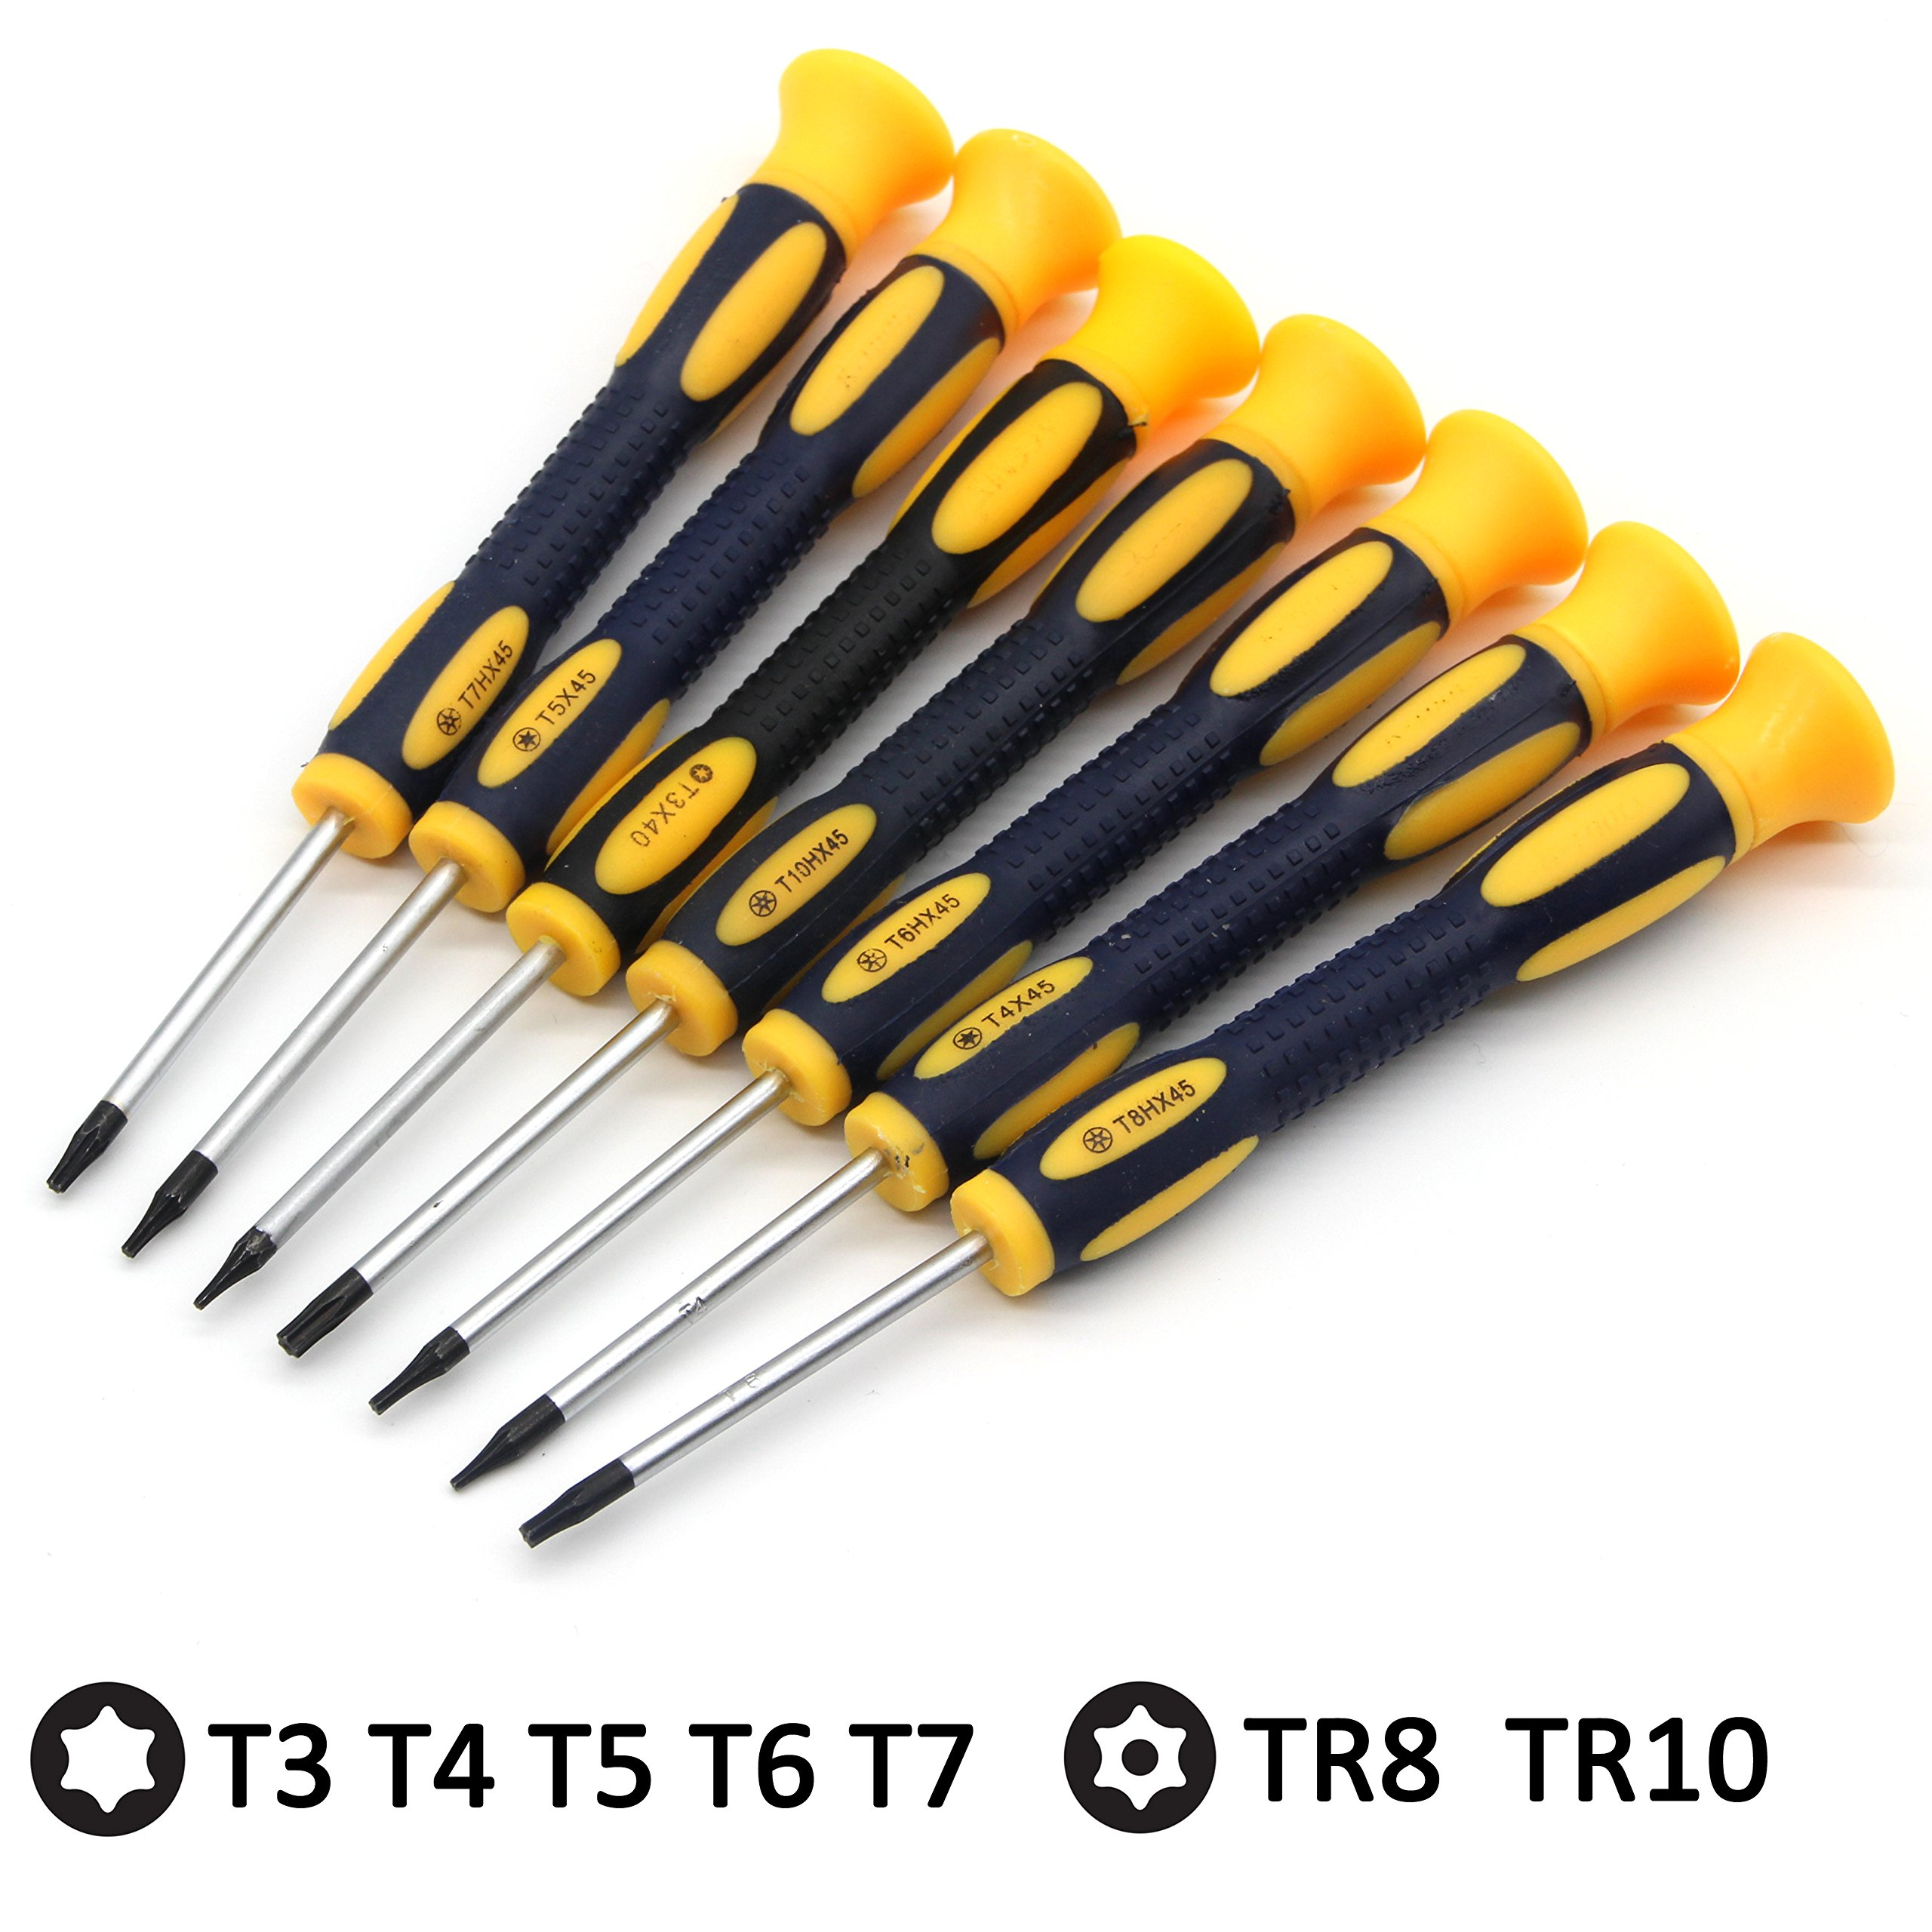 Kingsdun 12 in 1 Torx Screwdriver Sets with T3 T4 T5 T6 T7 T8 T10 Star Screwdrivers, Stainless Steel Tweezers & Philip Slotted Magnetic Screwdrivers for Phone/Mac/Computer Repairing by Kingsdun (Image #4)